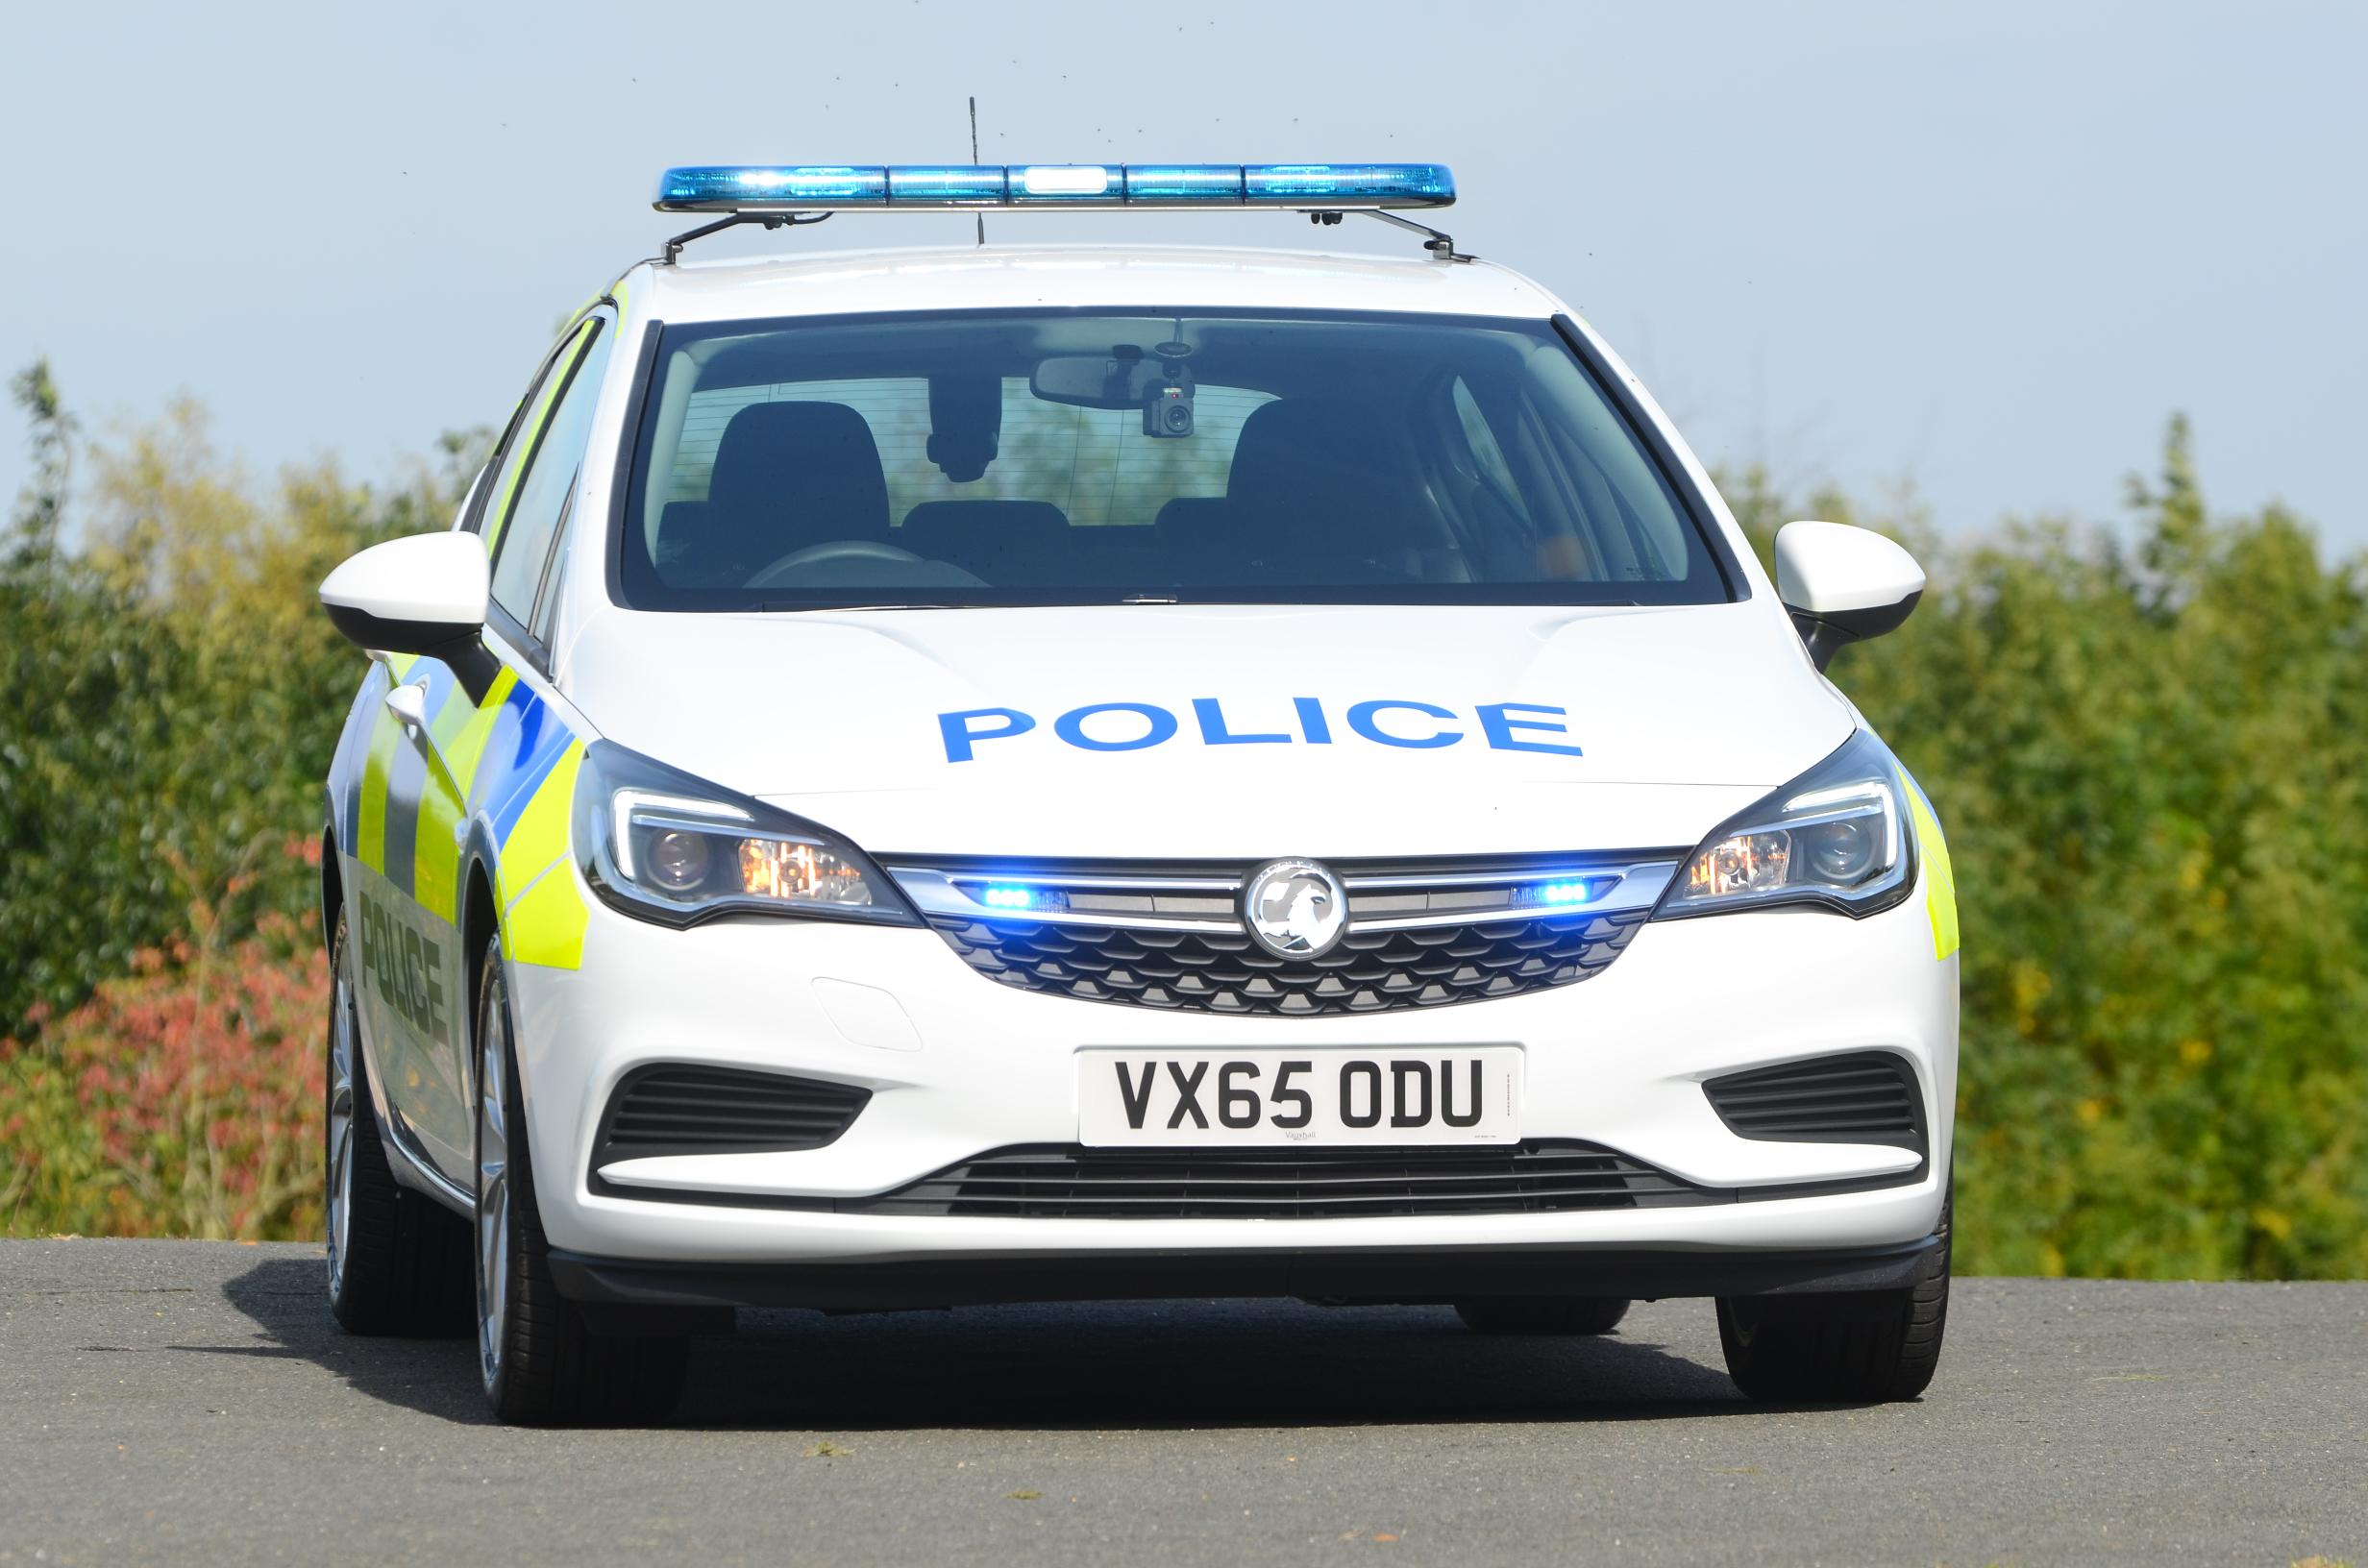 All New Vauxhall Quot Arresting Quot Astra K Enters Police Service